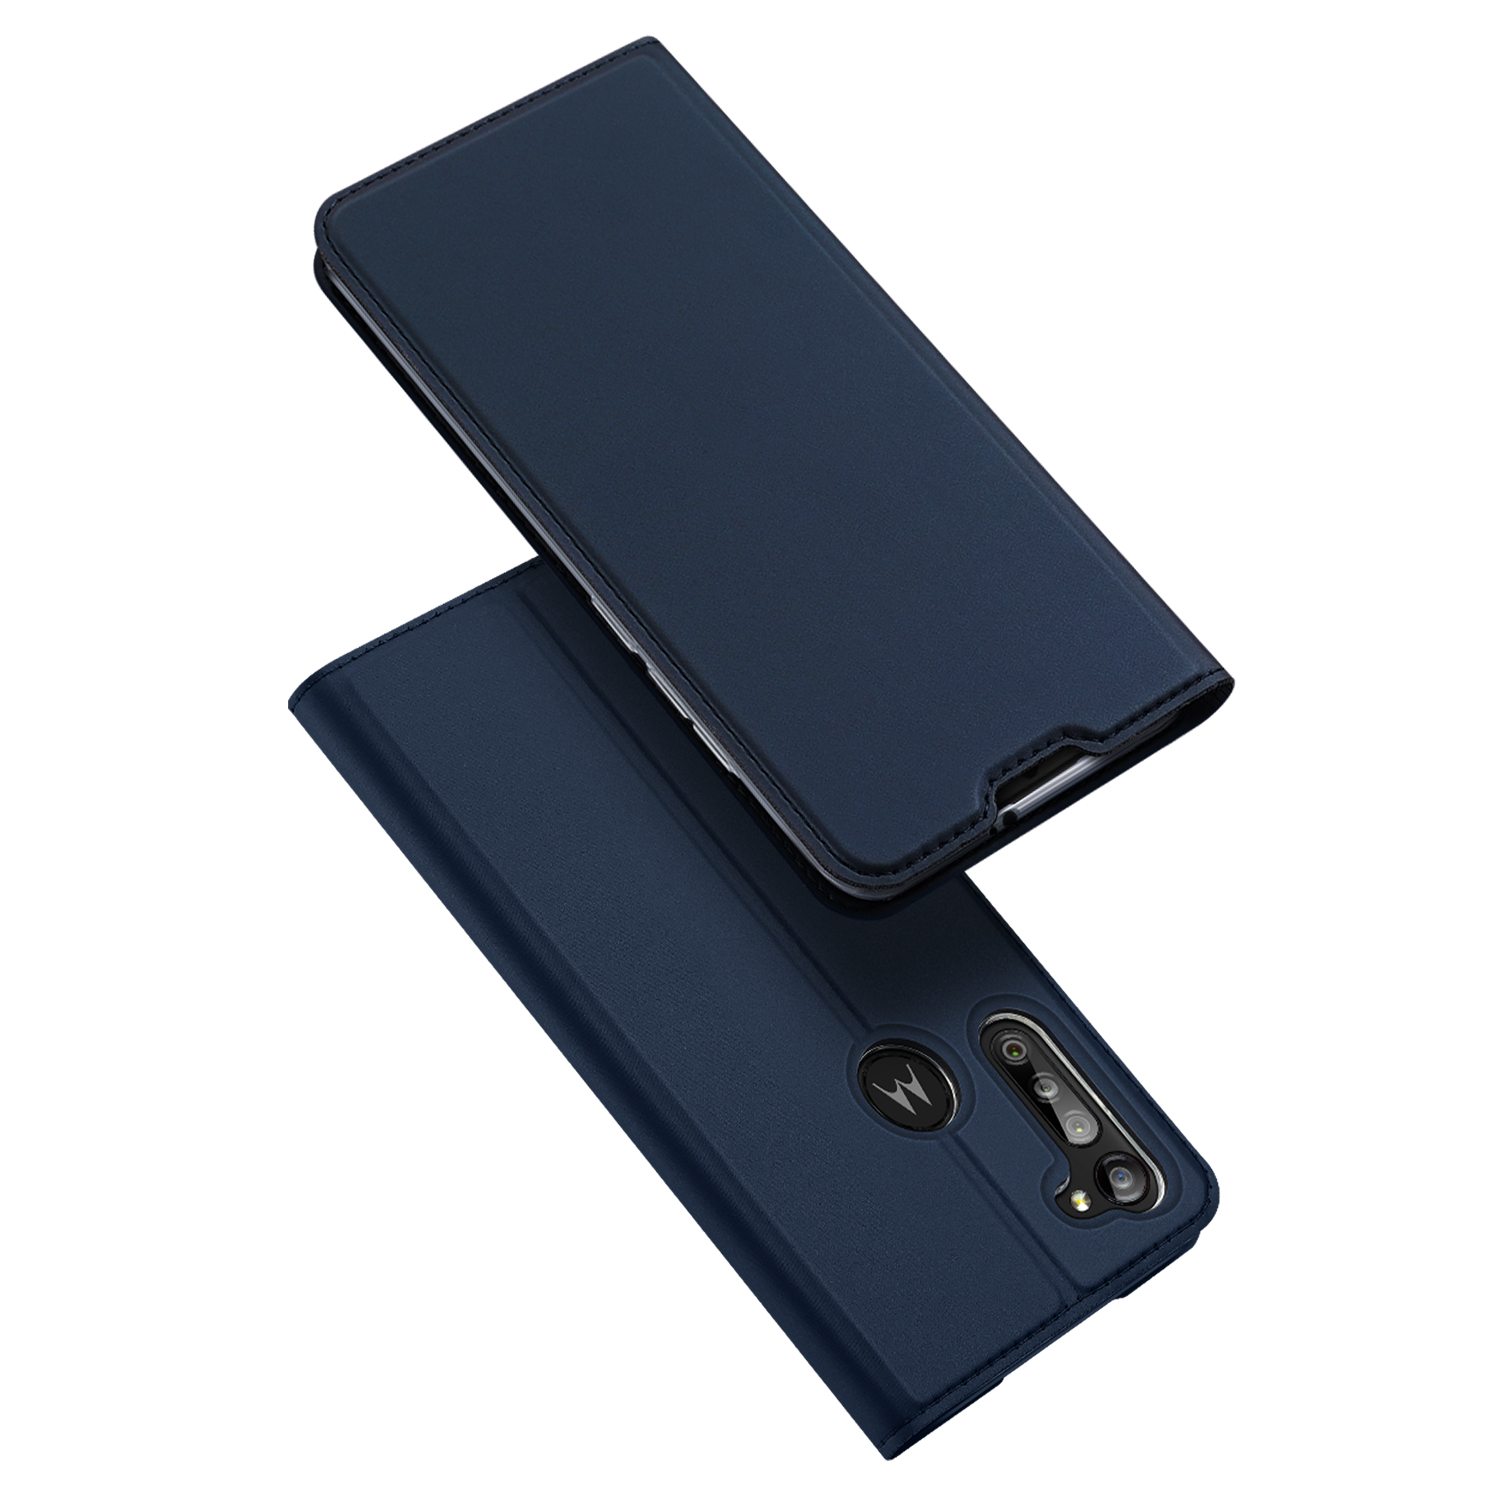 DUX DUCIS For Moto G8/G8 Power Leather Mobile Phone Cover Magnetic Protective Case Bracket with Cards Slot Royal blue_Moto G8 Power